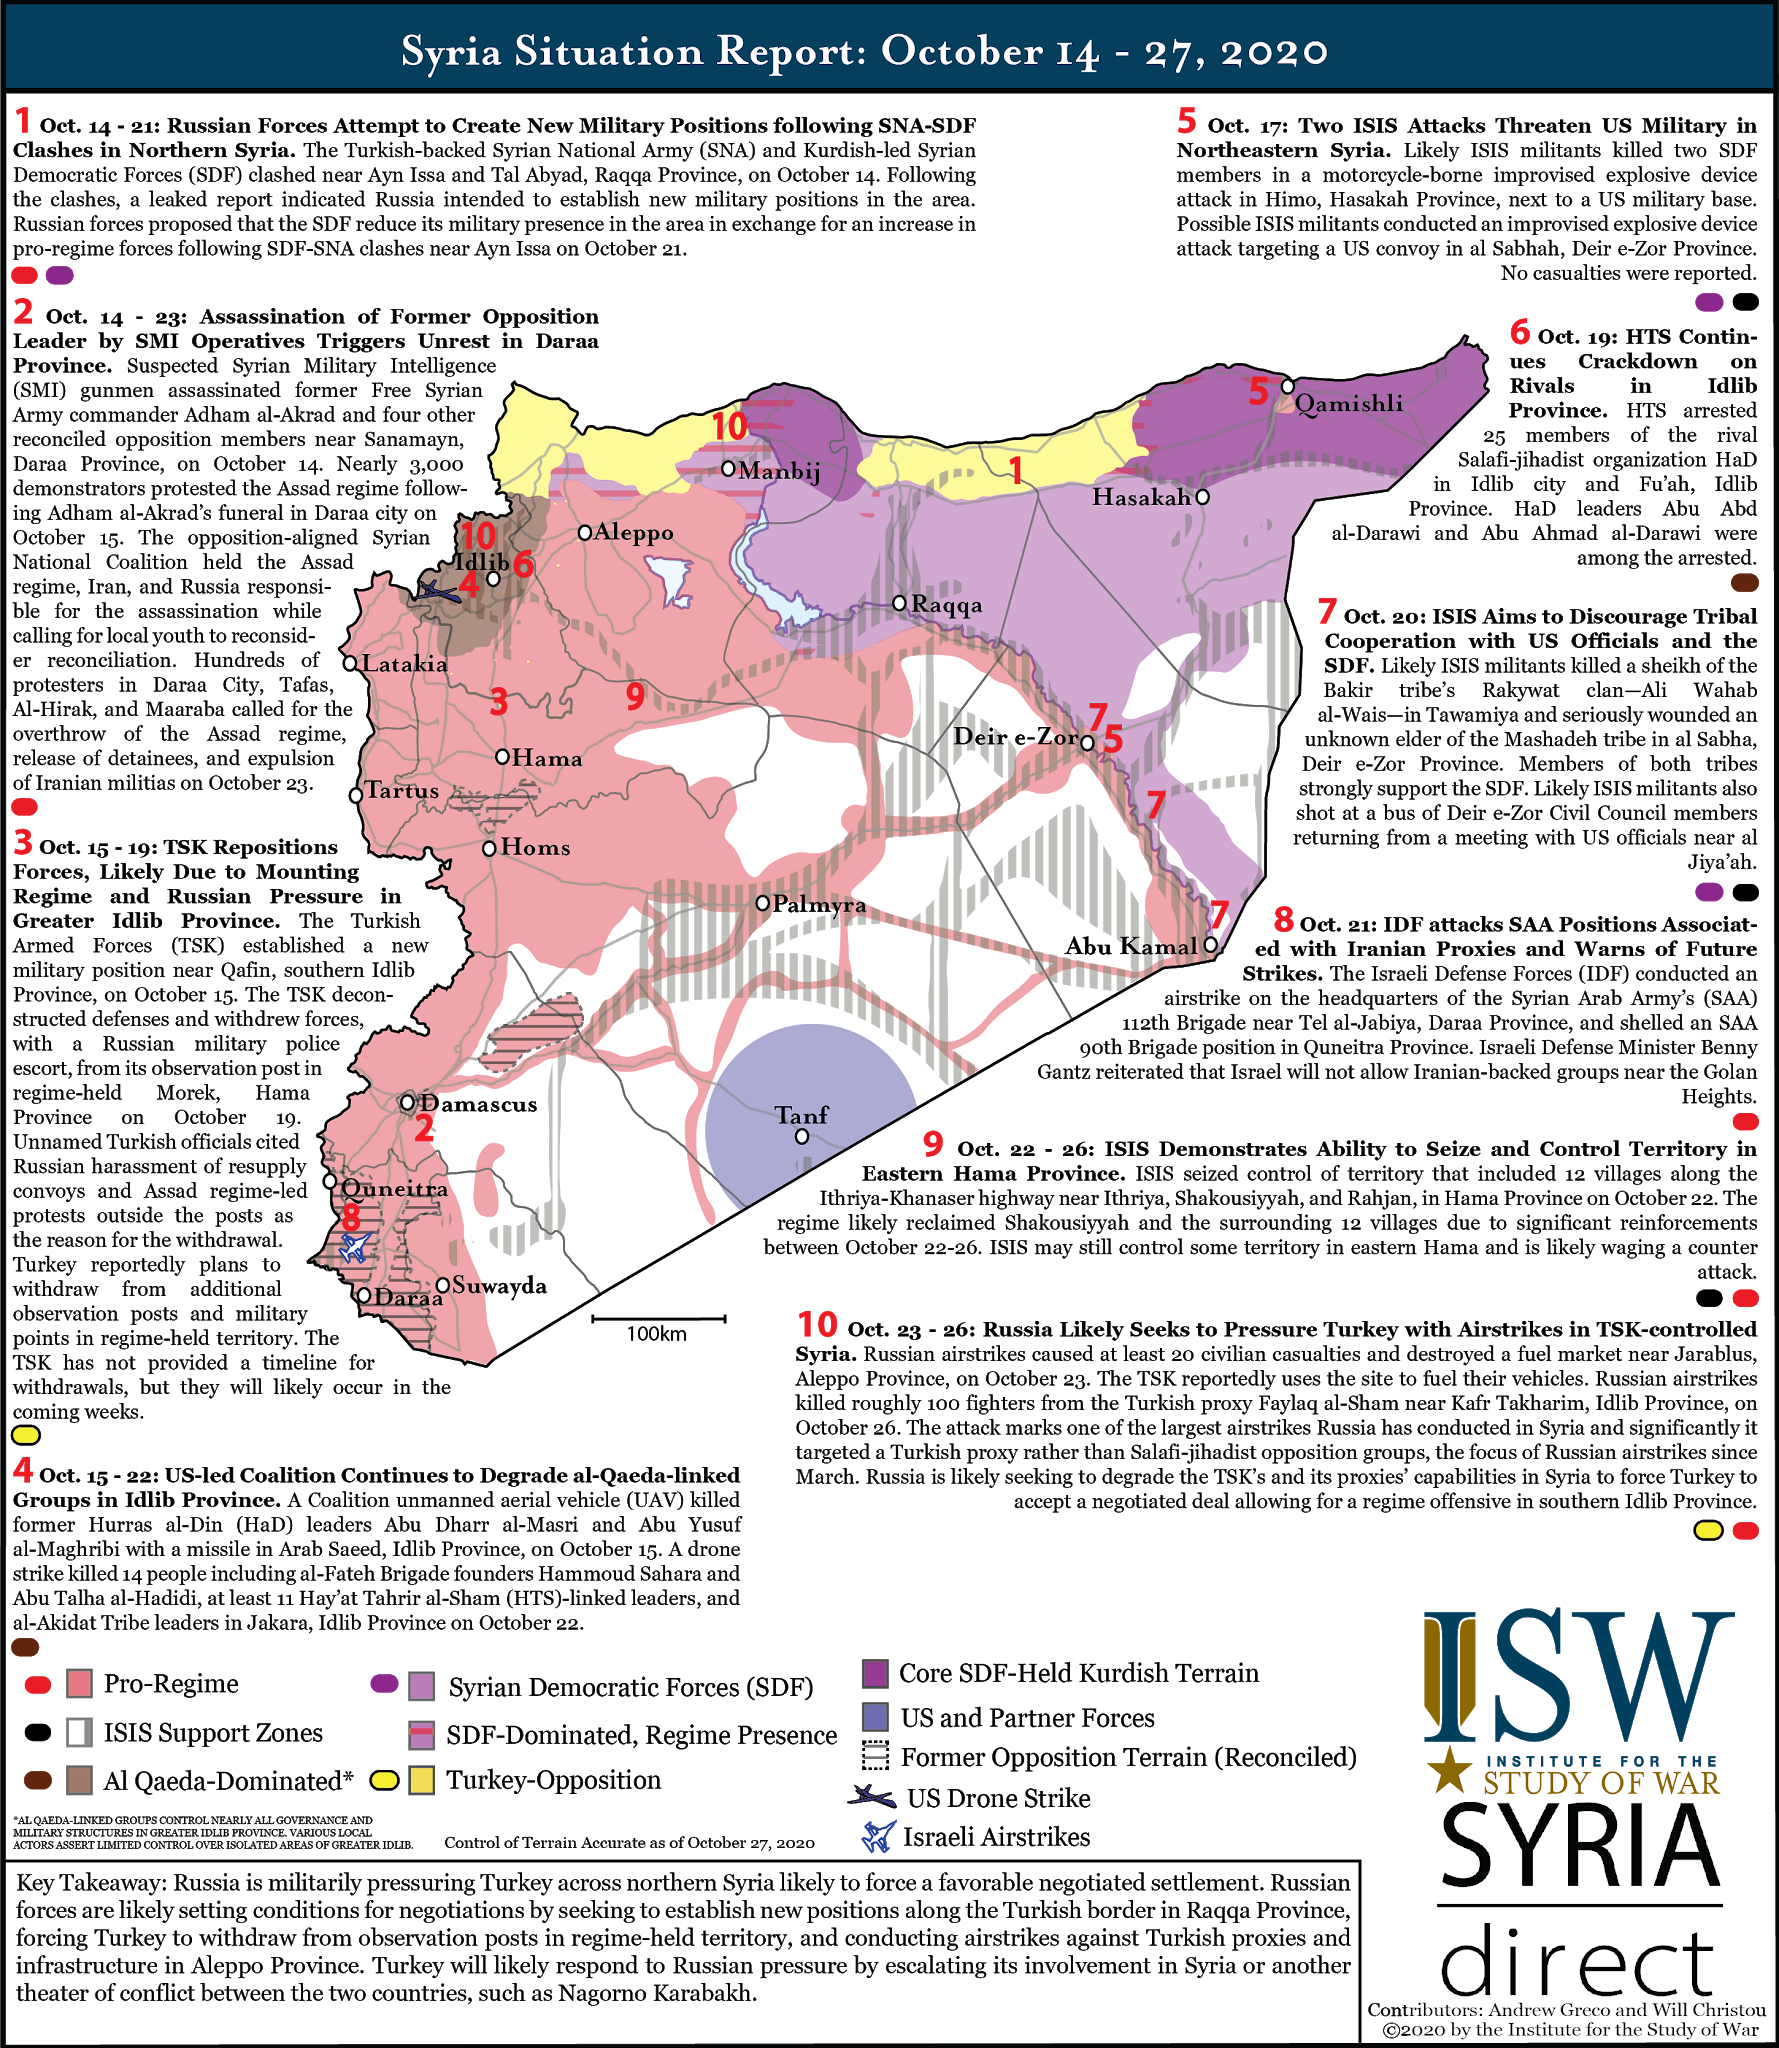 Syria Situation Report: October 14 - 27, 2020